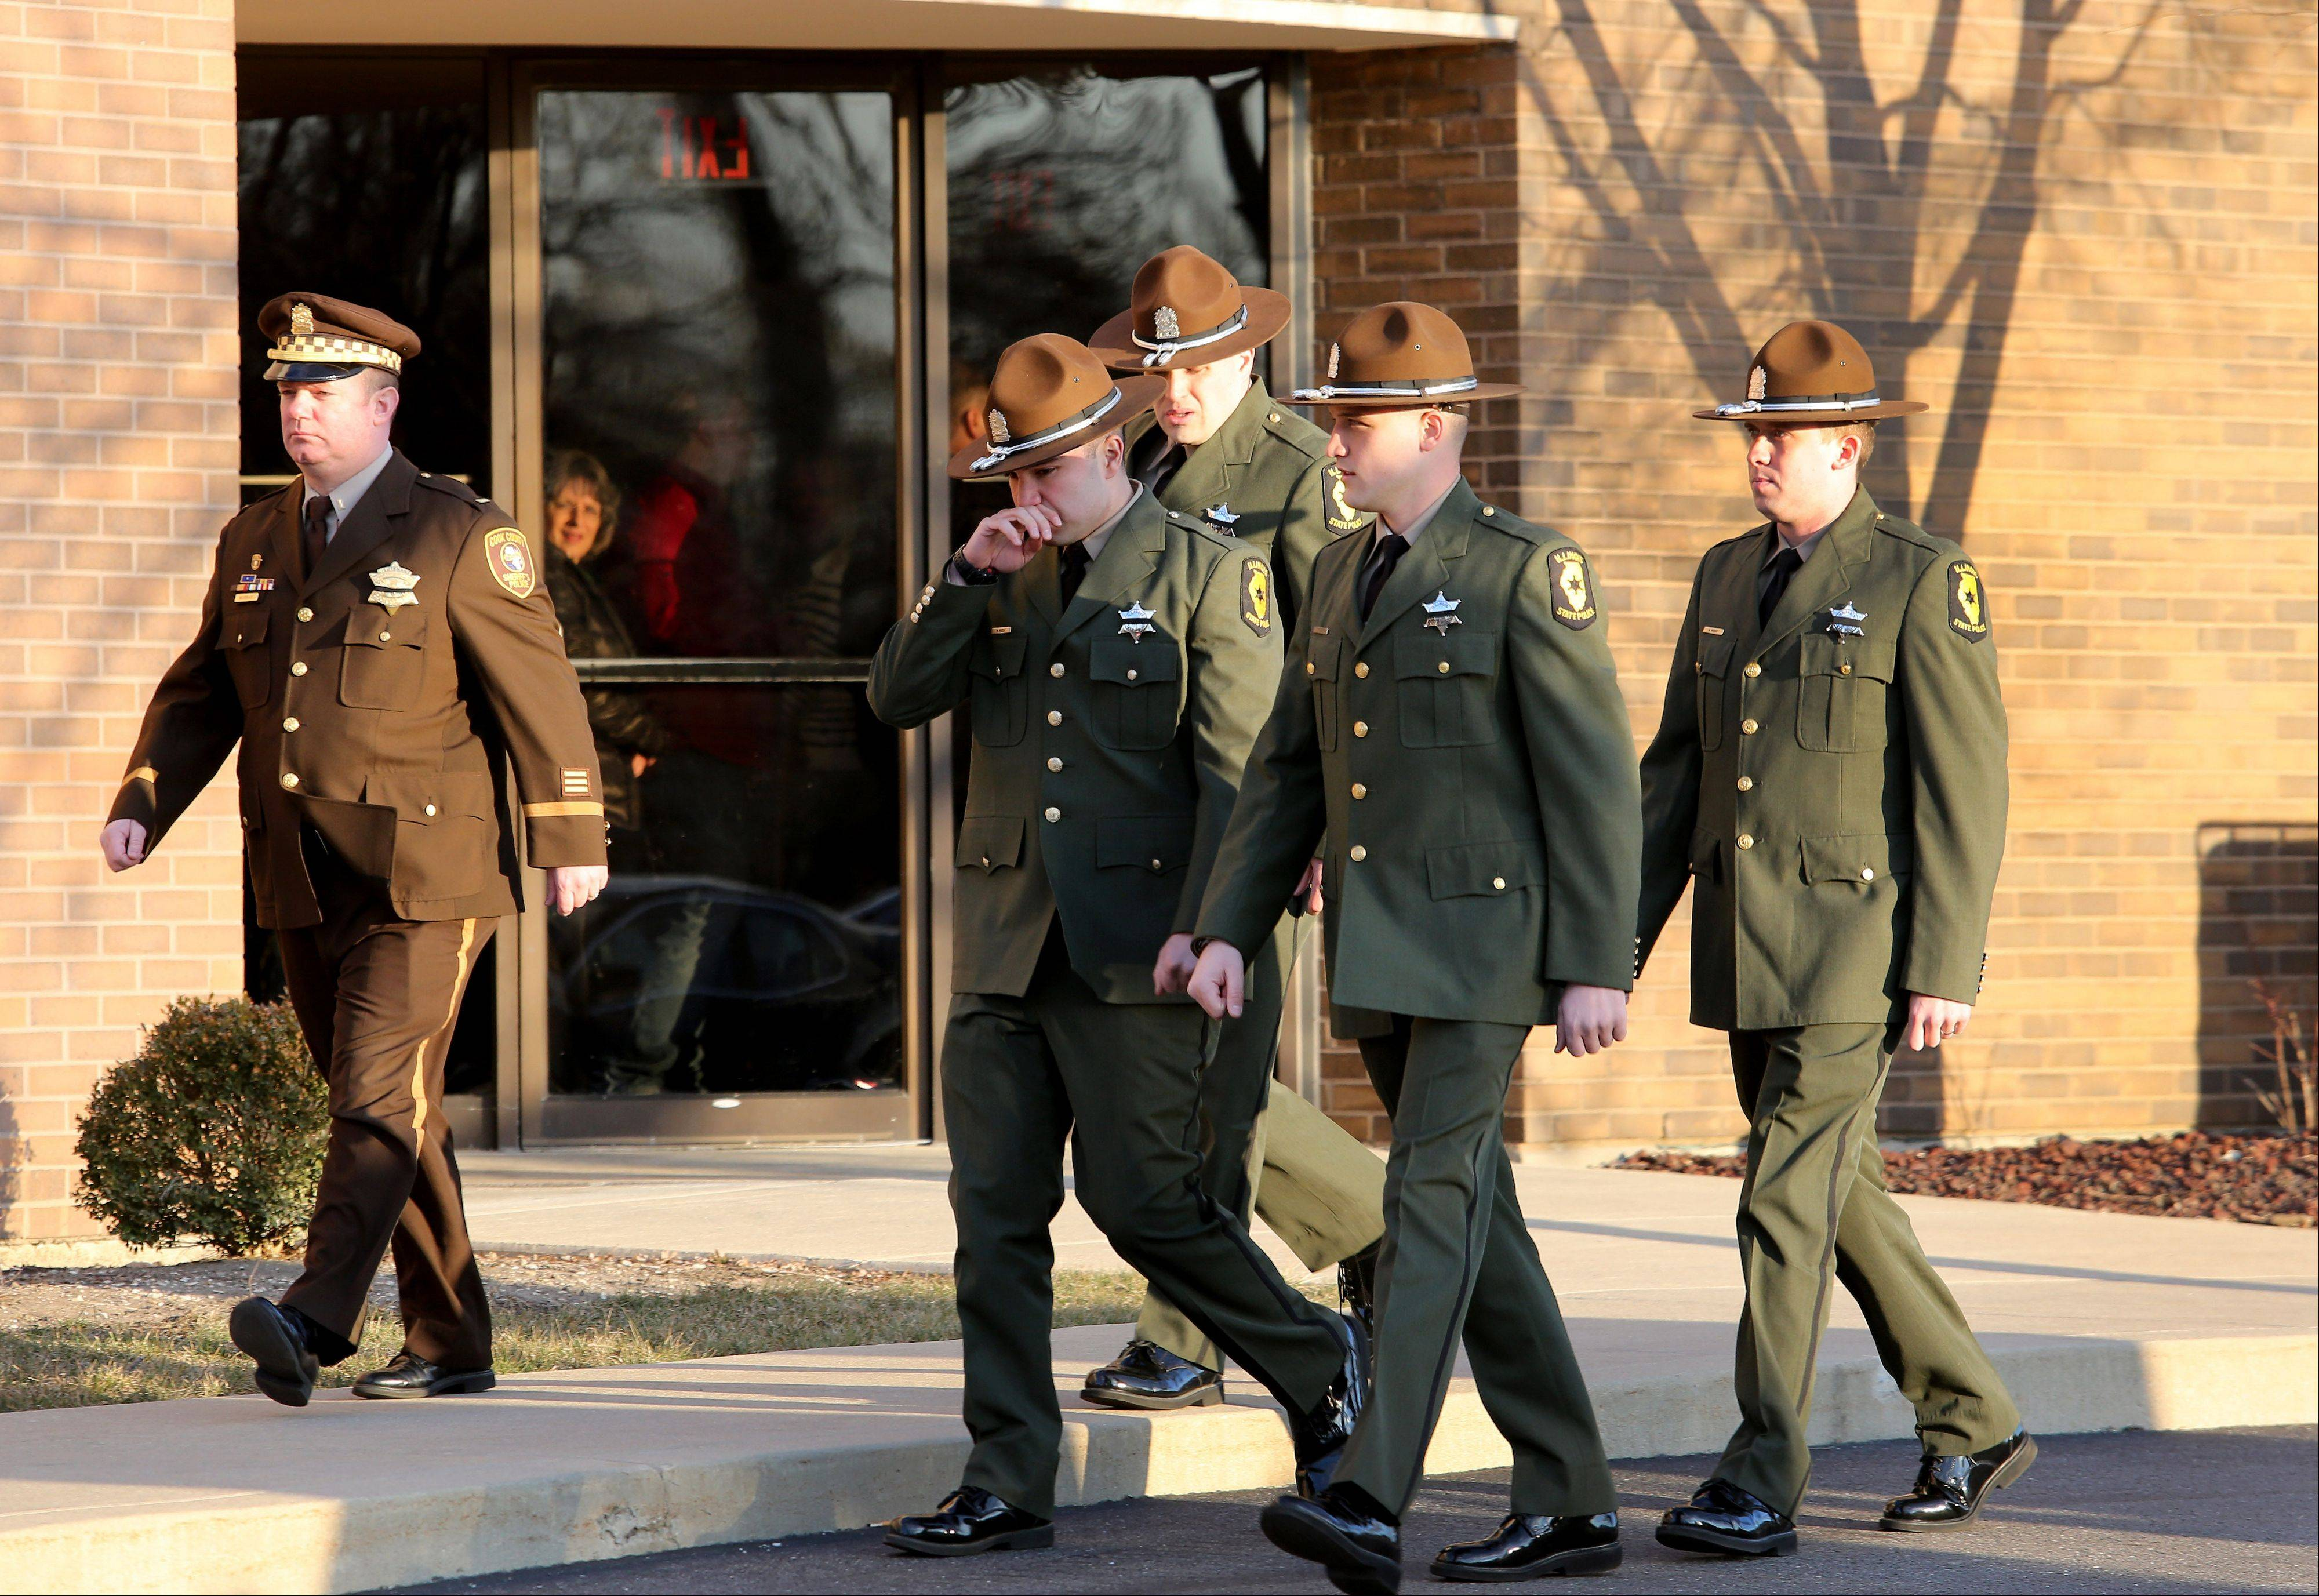 Mourners, including Illinois state troopers, arrive for the visitation of James Sauter at Moraine Valley Church in Palos Heights on Monday. He was an Illinois state trooper from Vernon Hills, who was killed early Friday morning on the job.